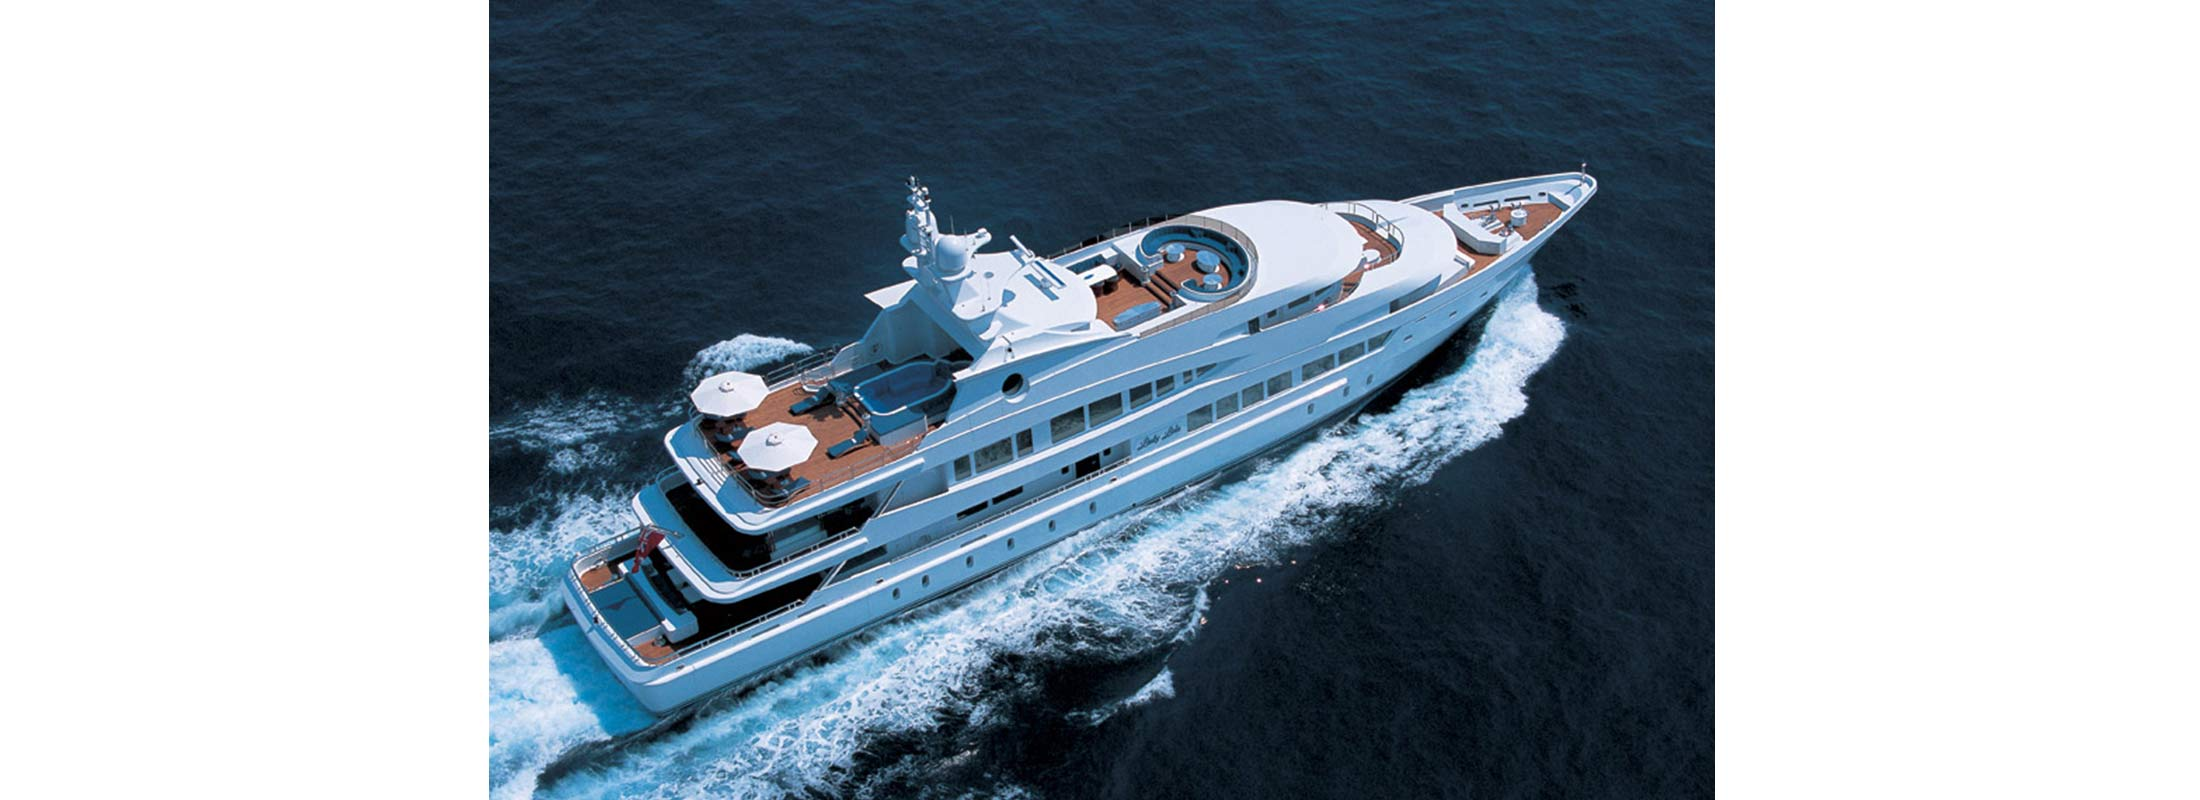 Lucky Lady luxury yacht charter Motor Yacht for Charter Caribbean Sea gallery 1